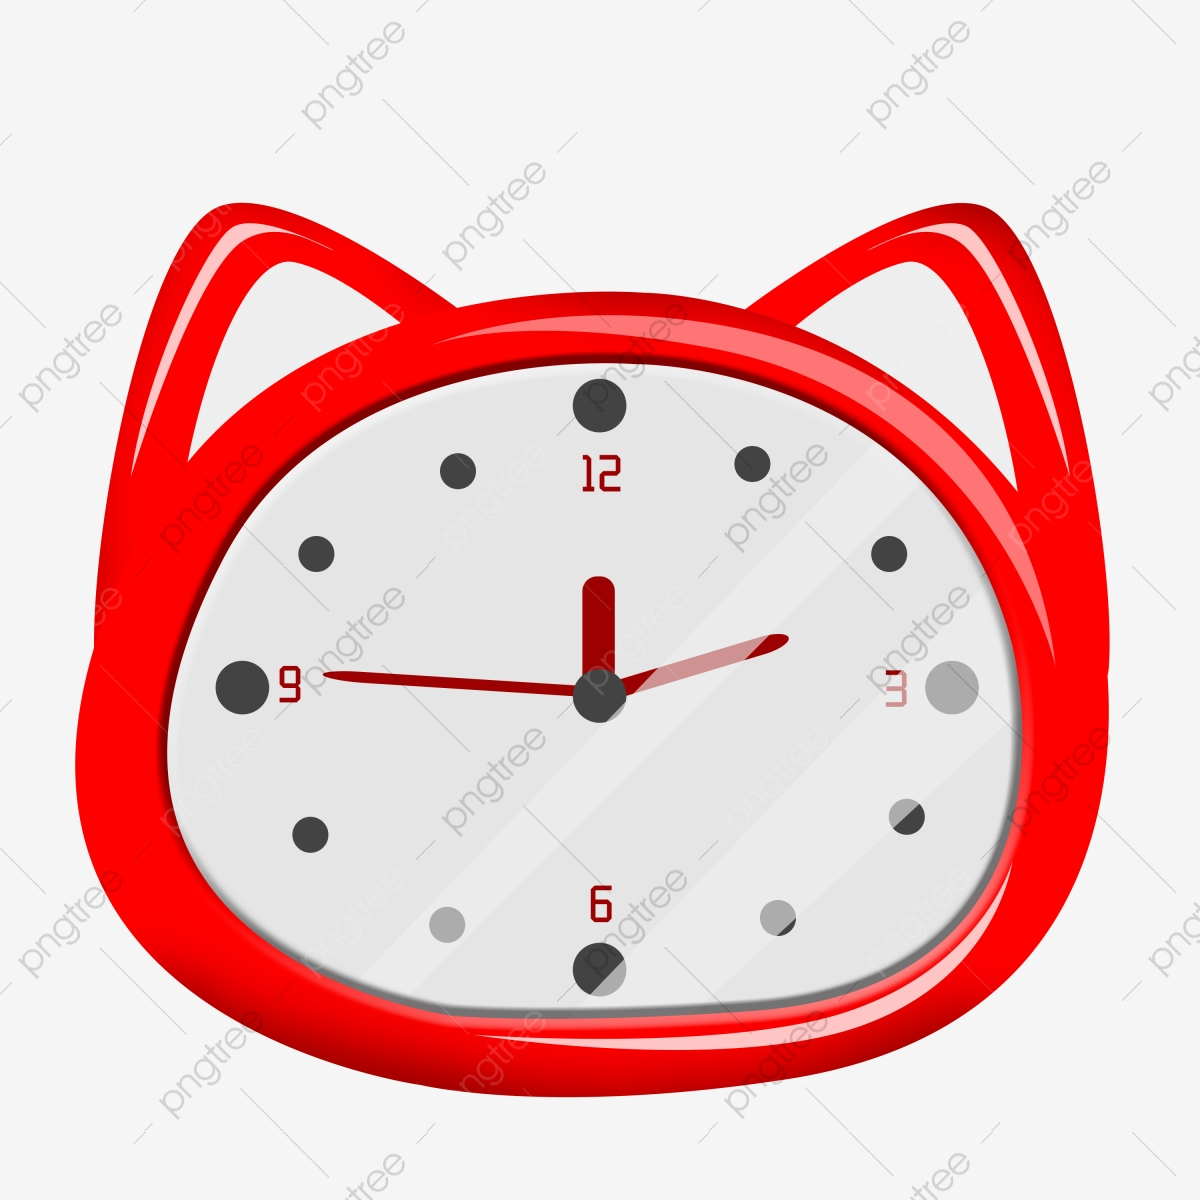 Red Alarm Clock Cute Alarm Clock Illustration Cat Head Clock